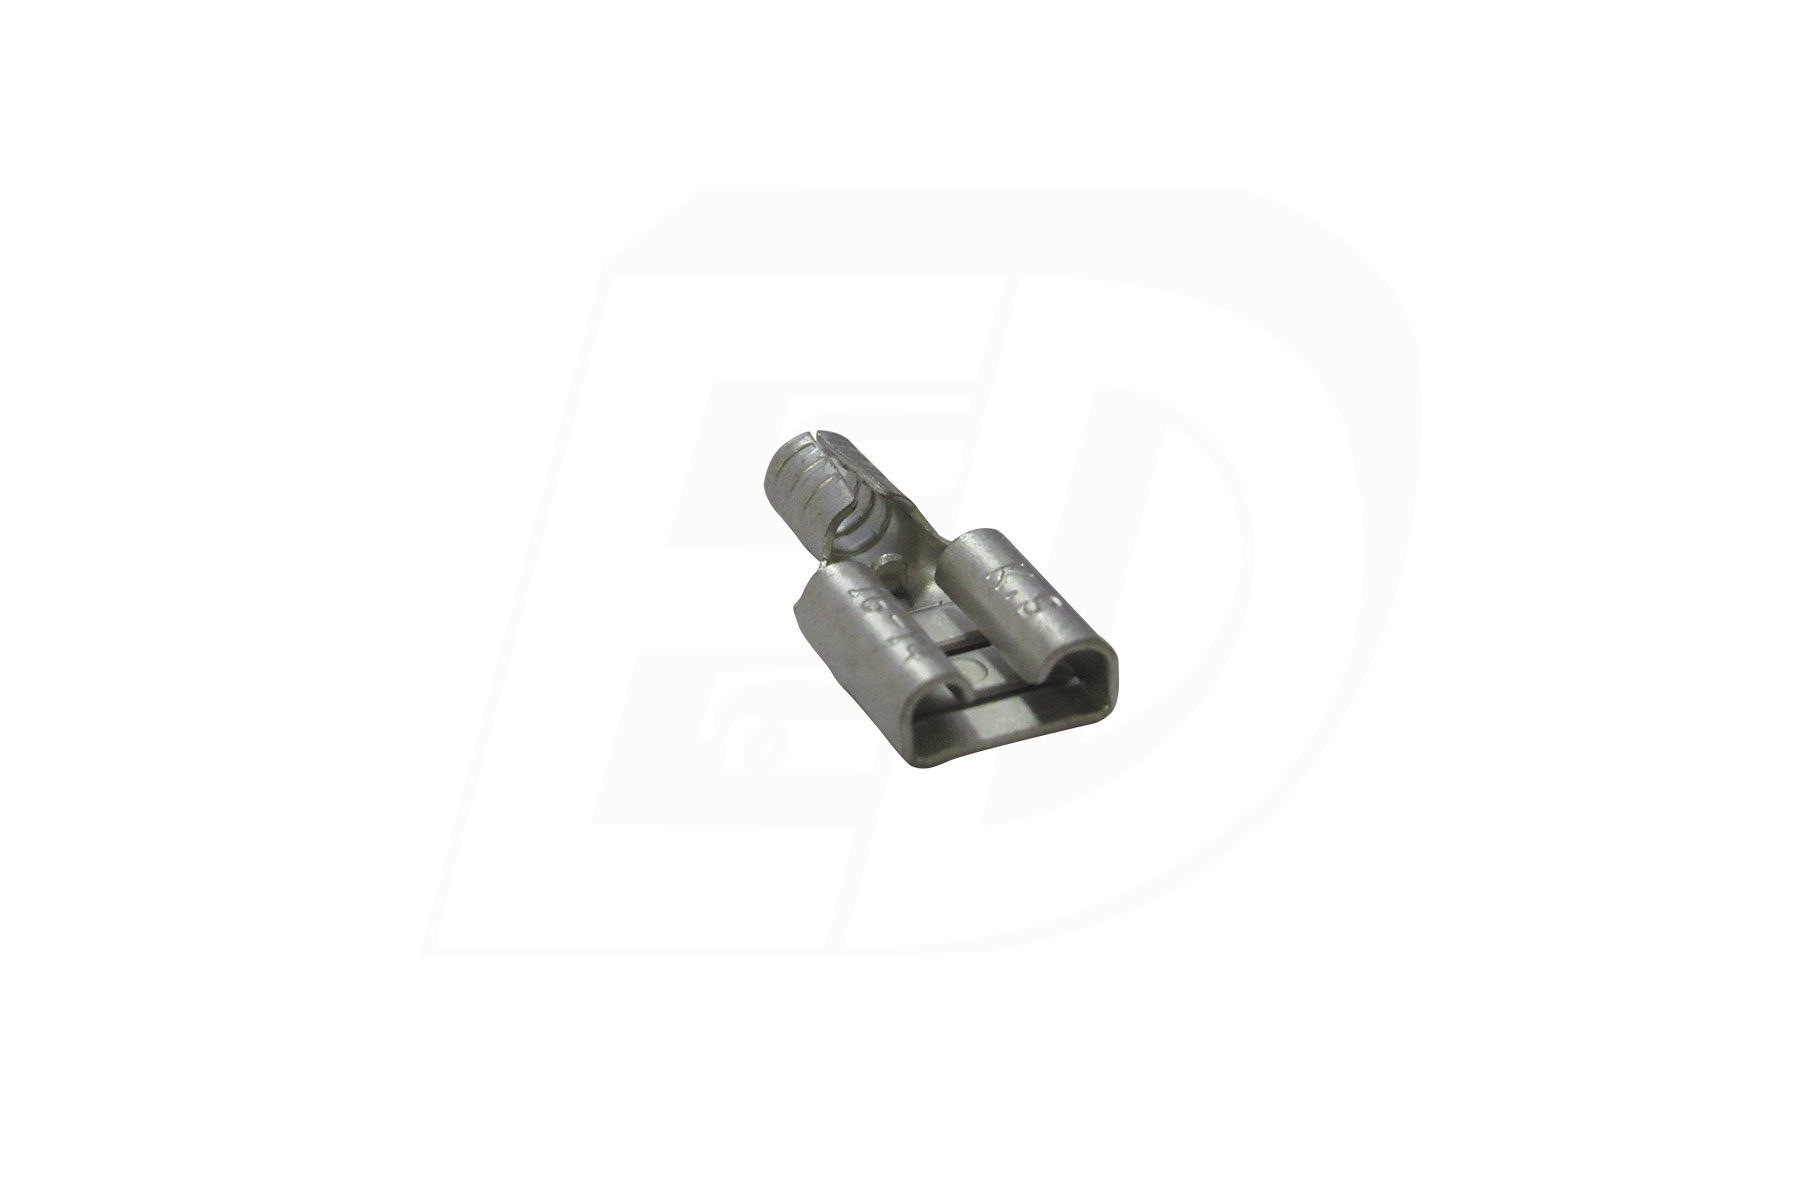 Butted Seam Female Disconnect Terminals with tin plated copper sleeve 16 - 14 AWG